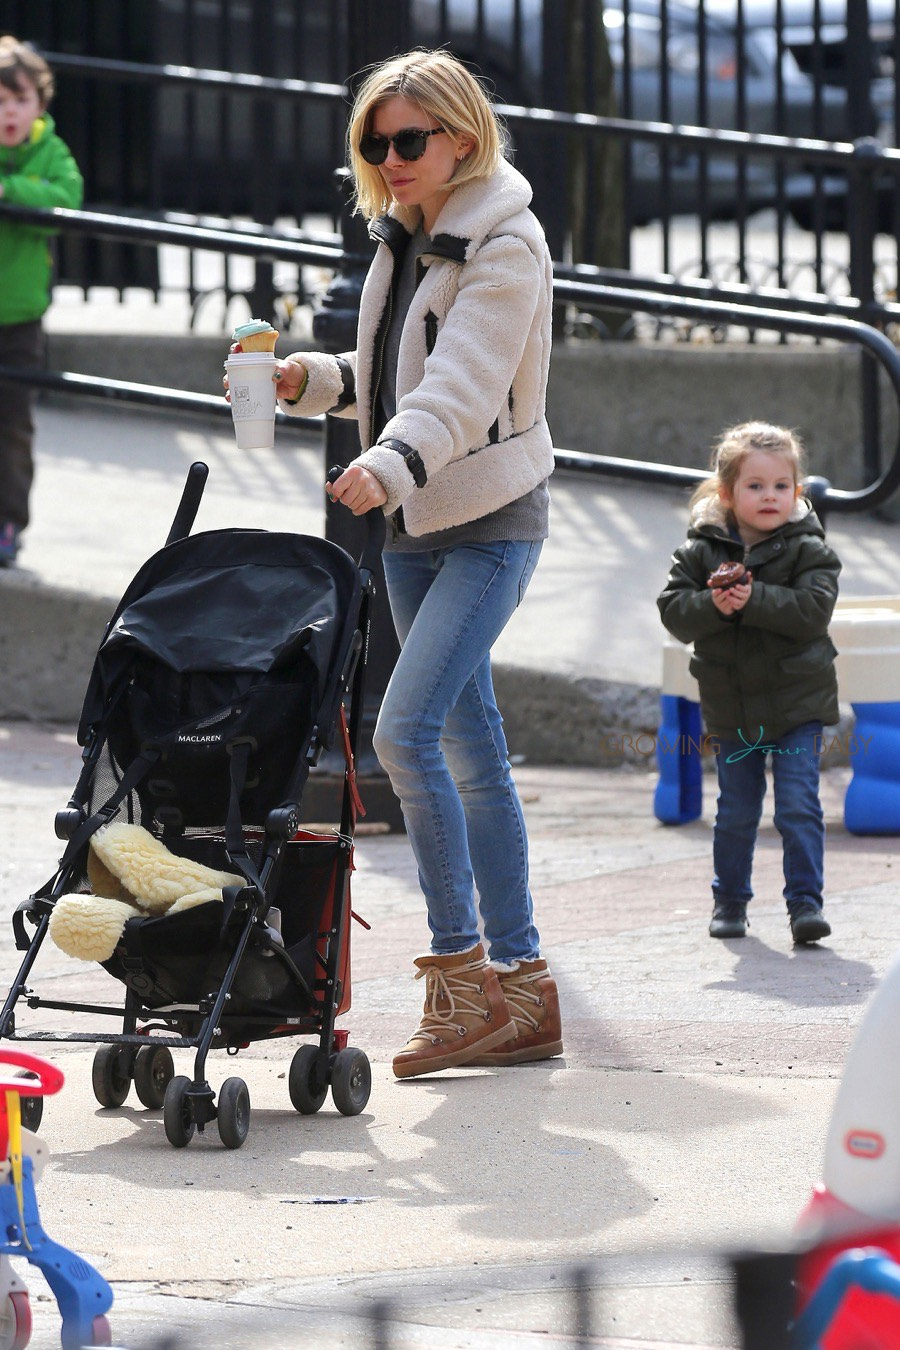 sienna miller steps out with her daughter marlowe